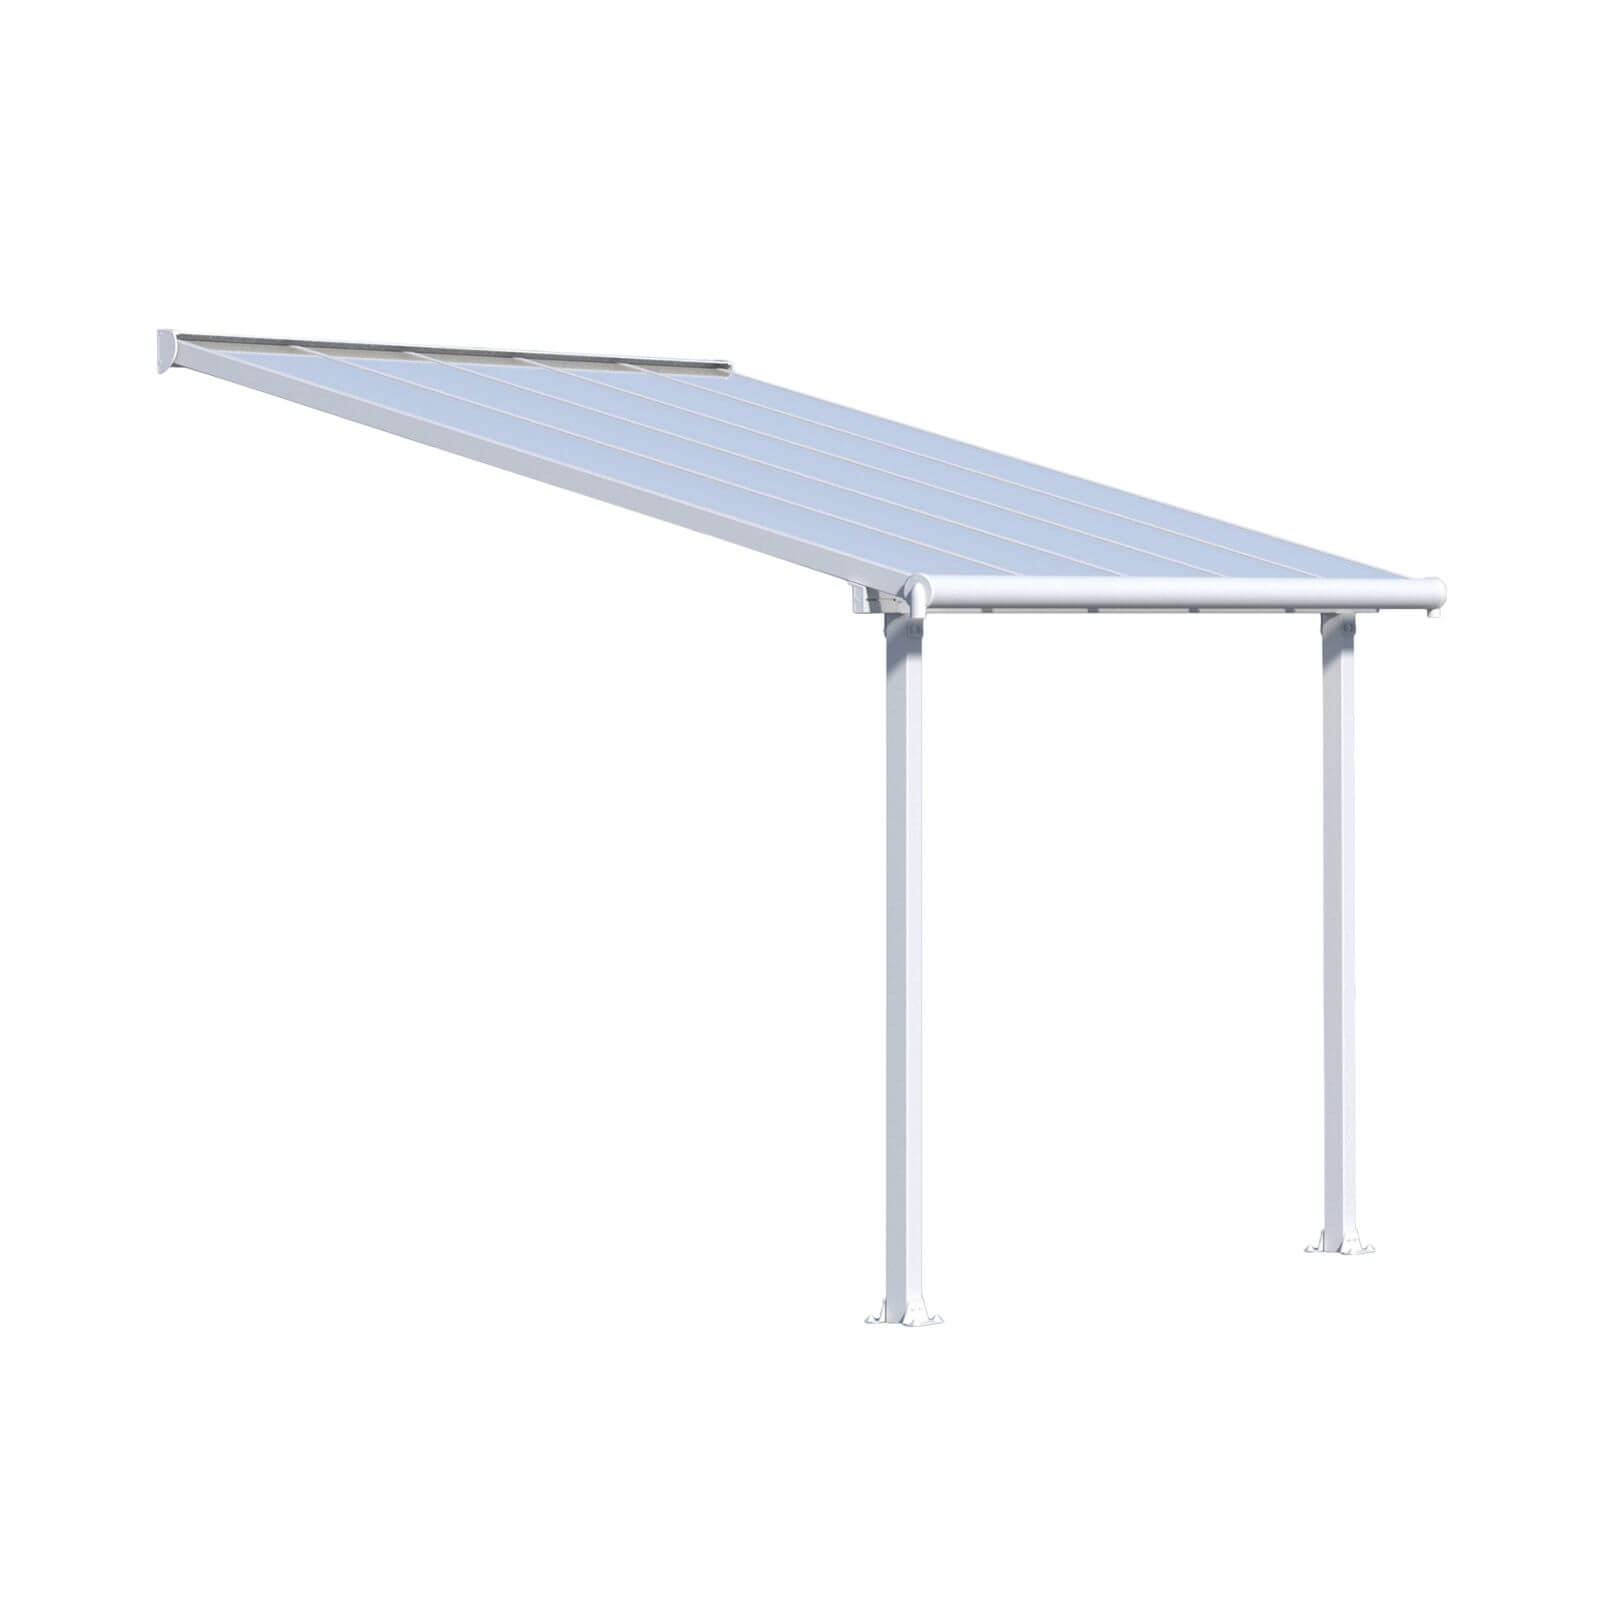 Palram - Canopia Olympia Patio Cover 3X3.05 White Clear